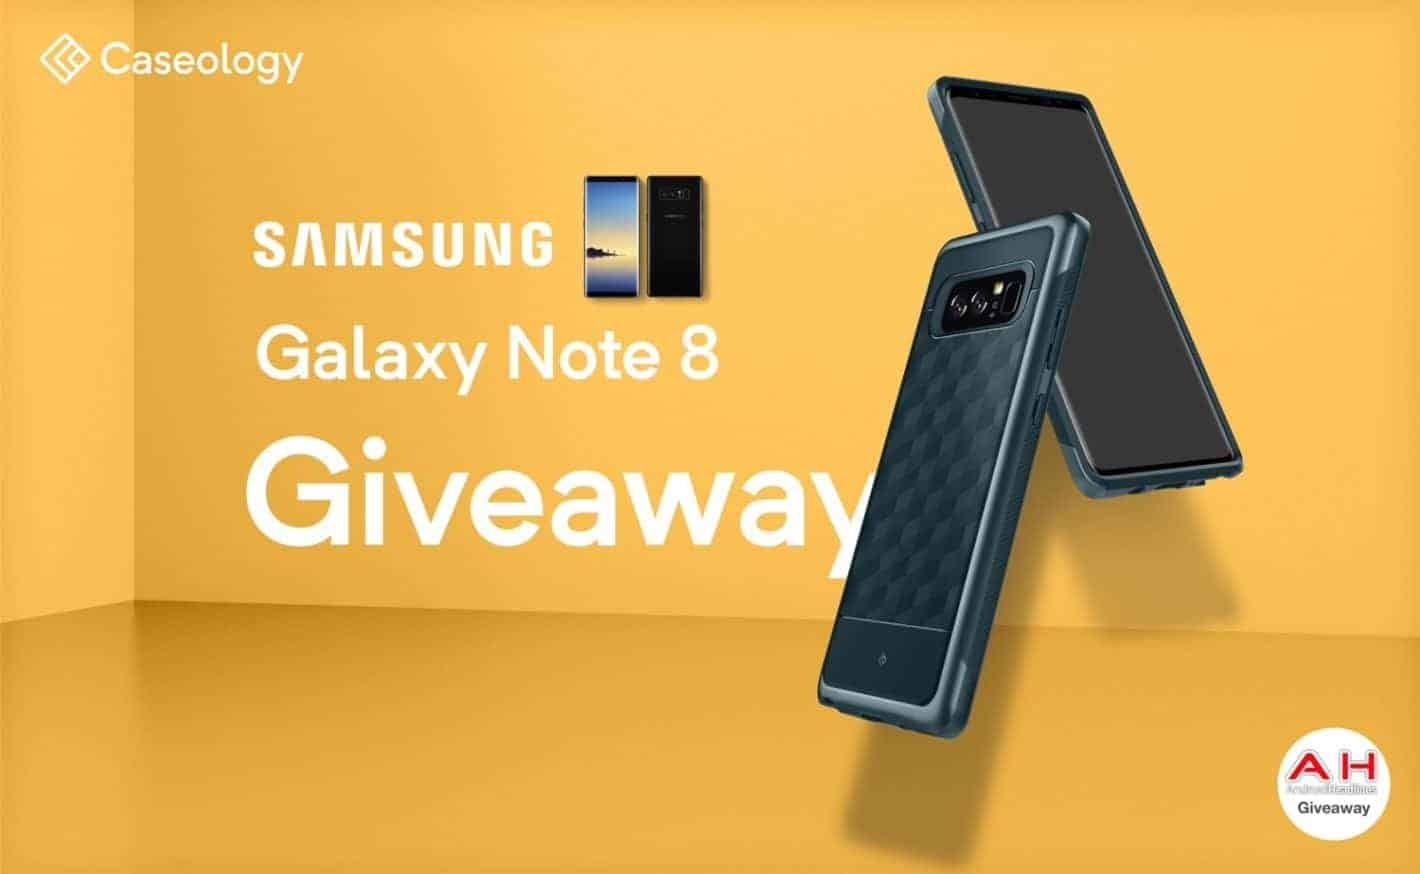 Caseology Samsung Note 8 Contest Banner 2